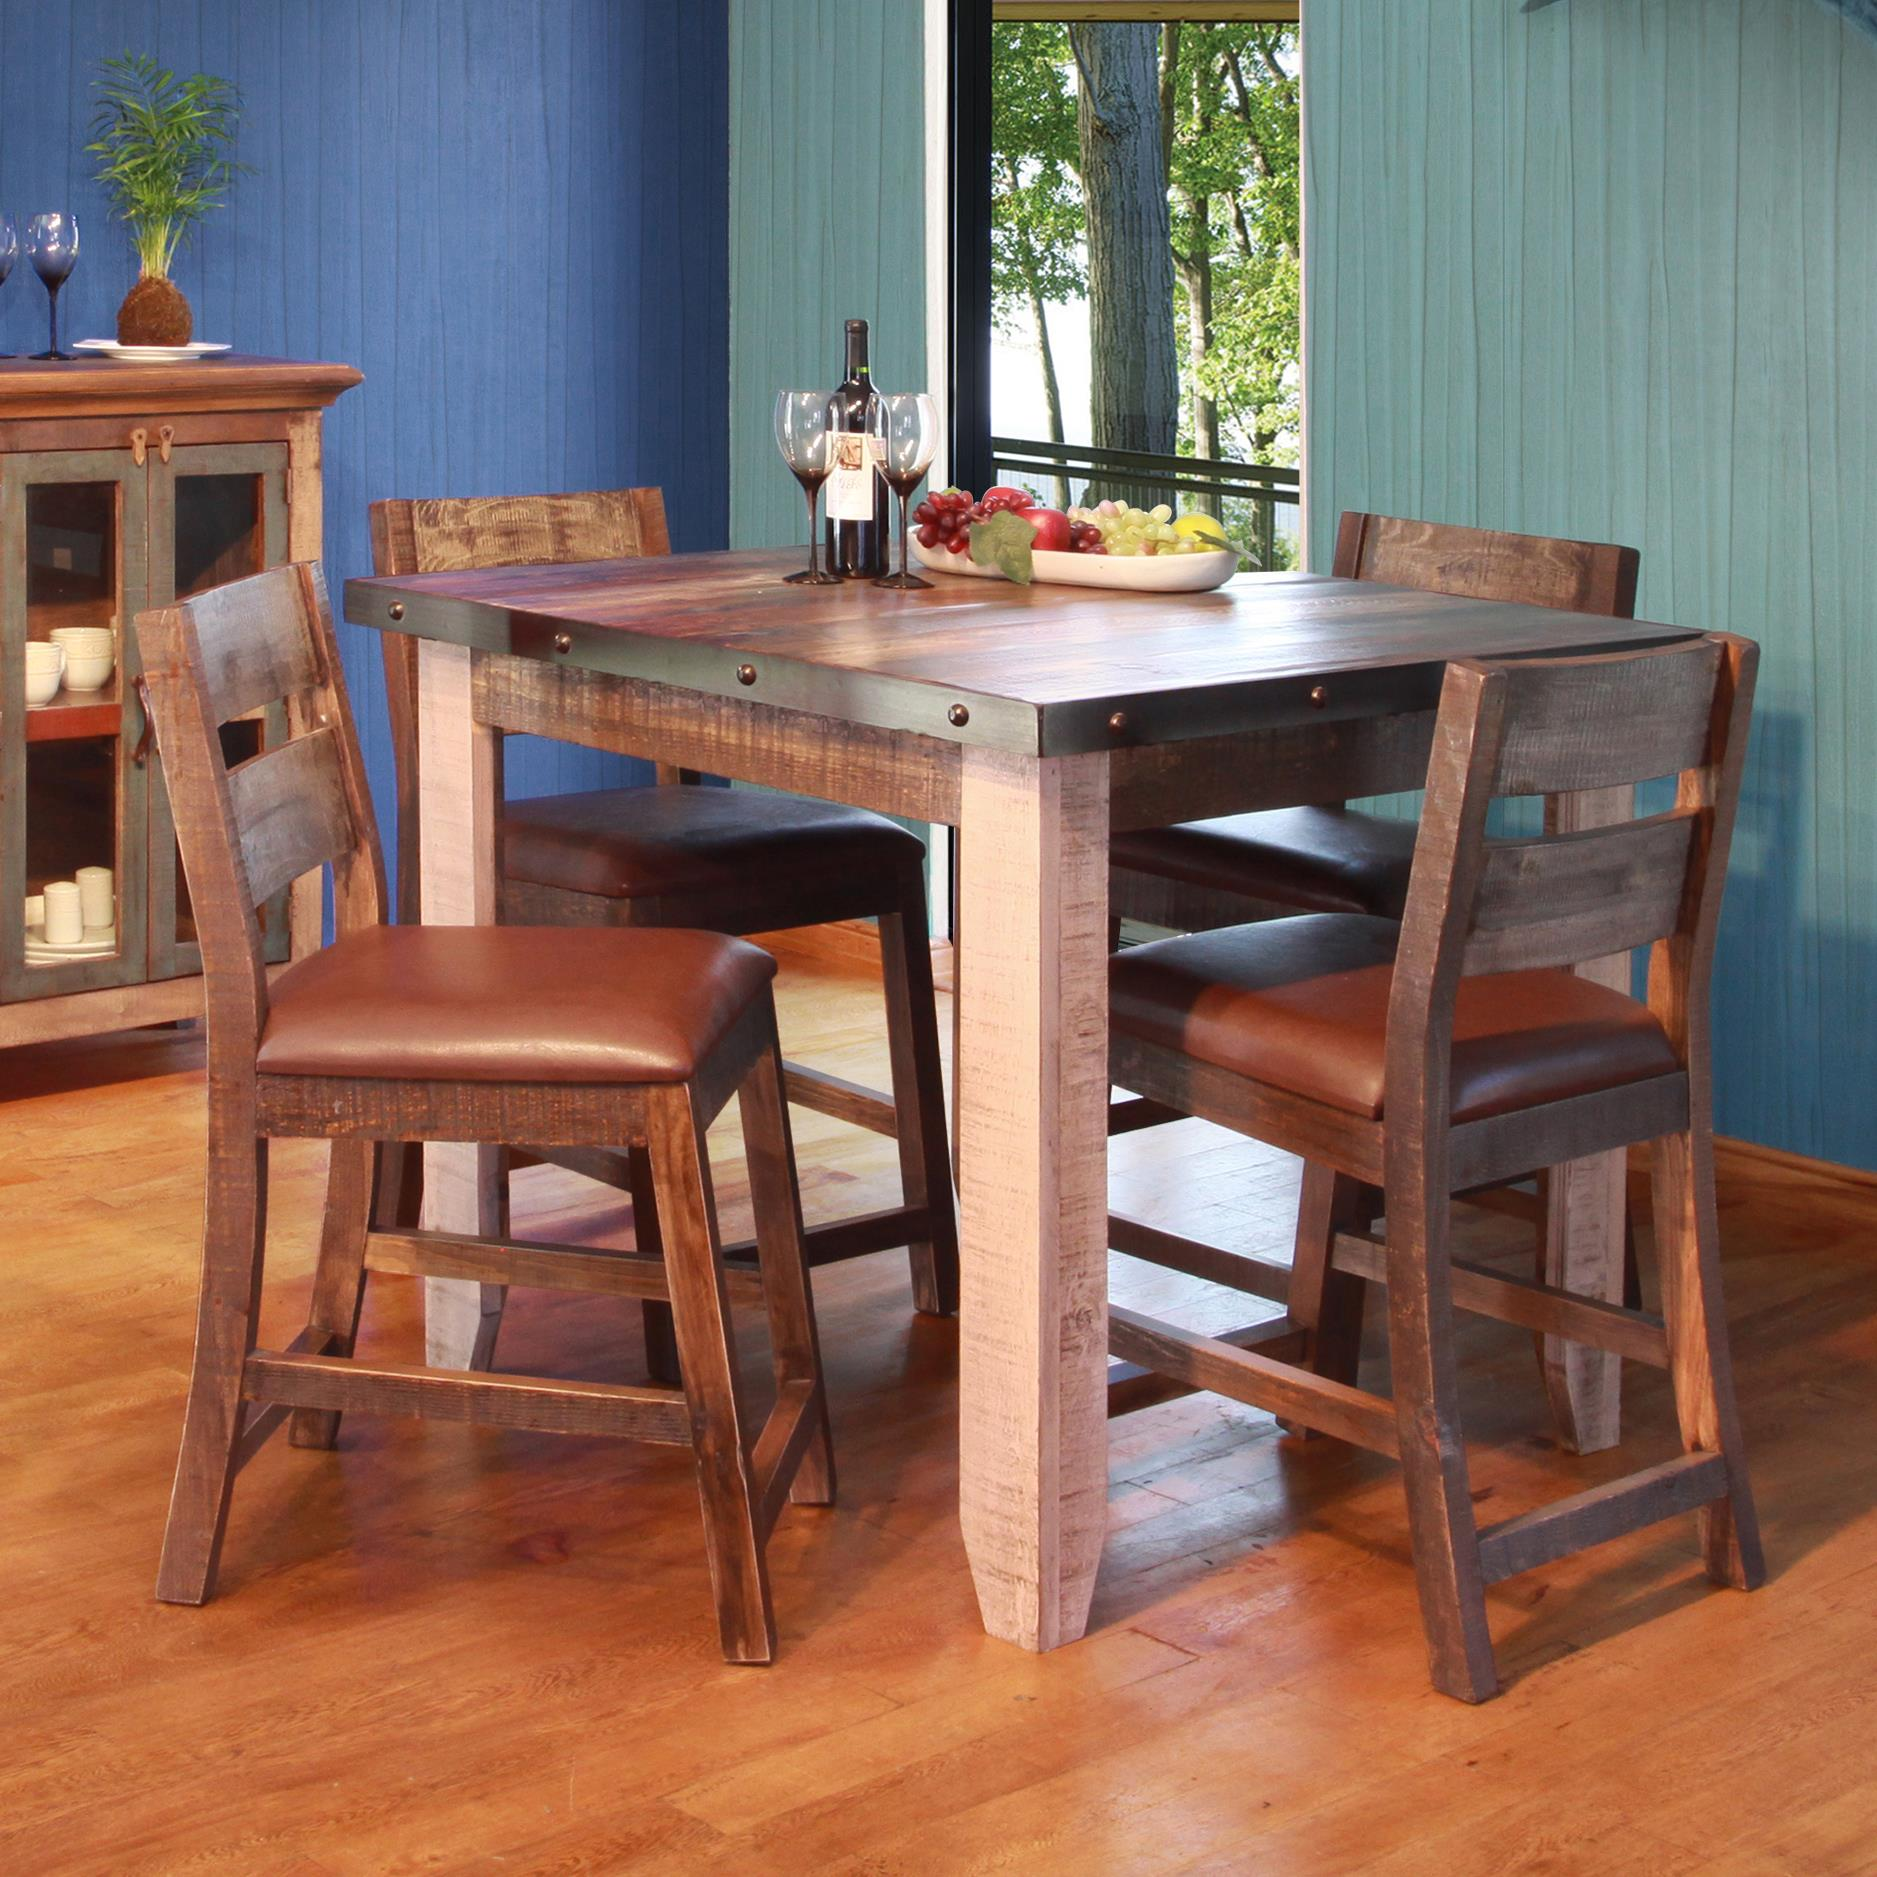 If 900 Antique 42 Counter Height Dining Table Set Lindy S Furniture Company Pub Table And Stool Sets